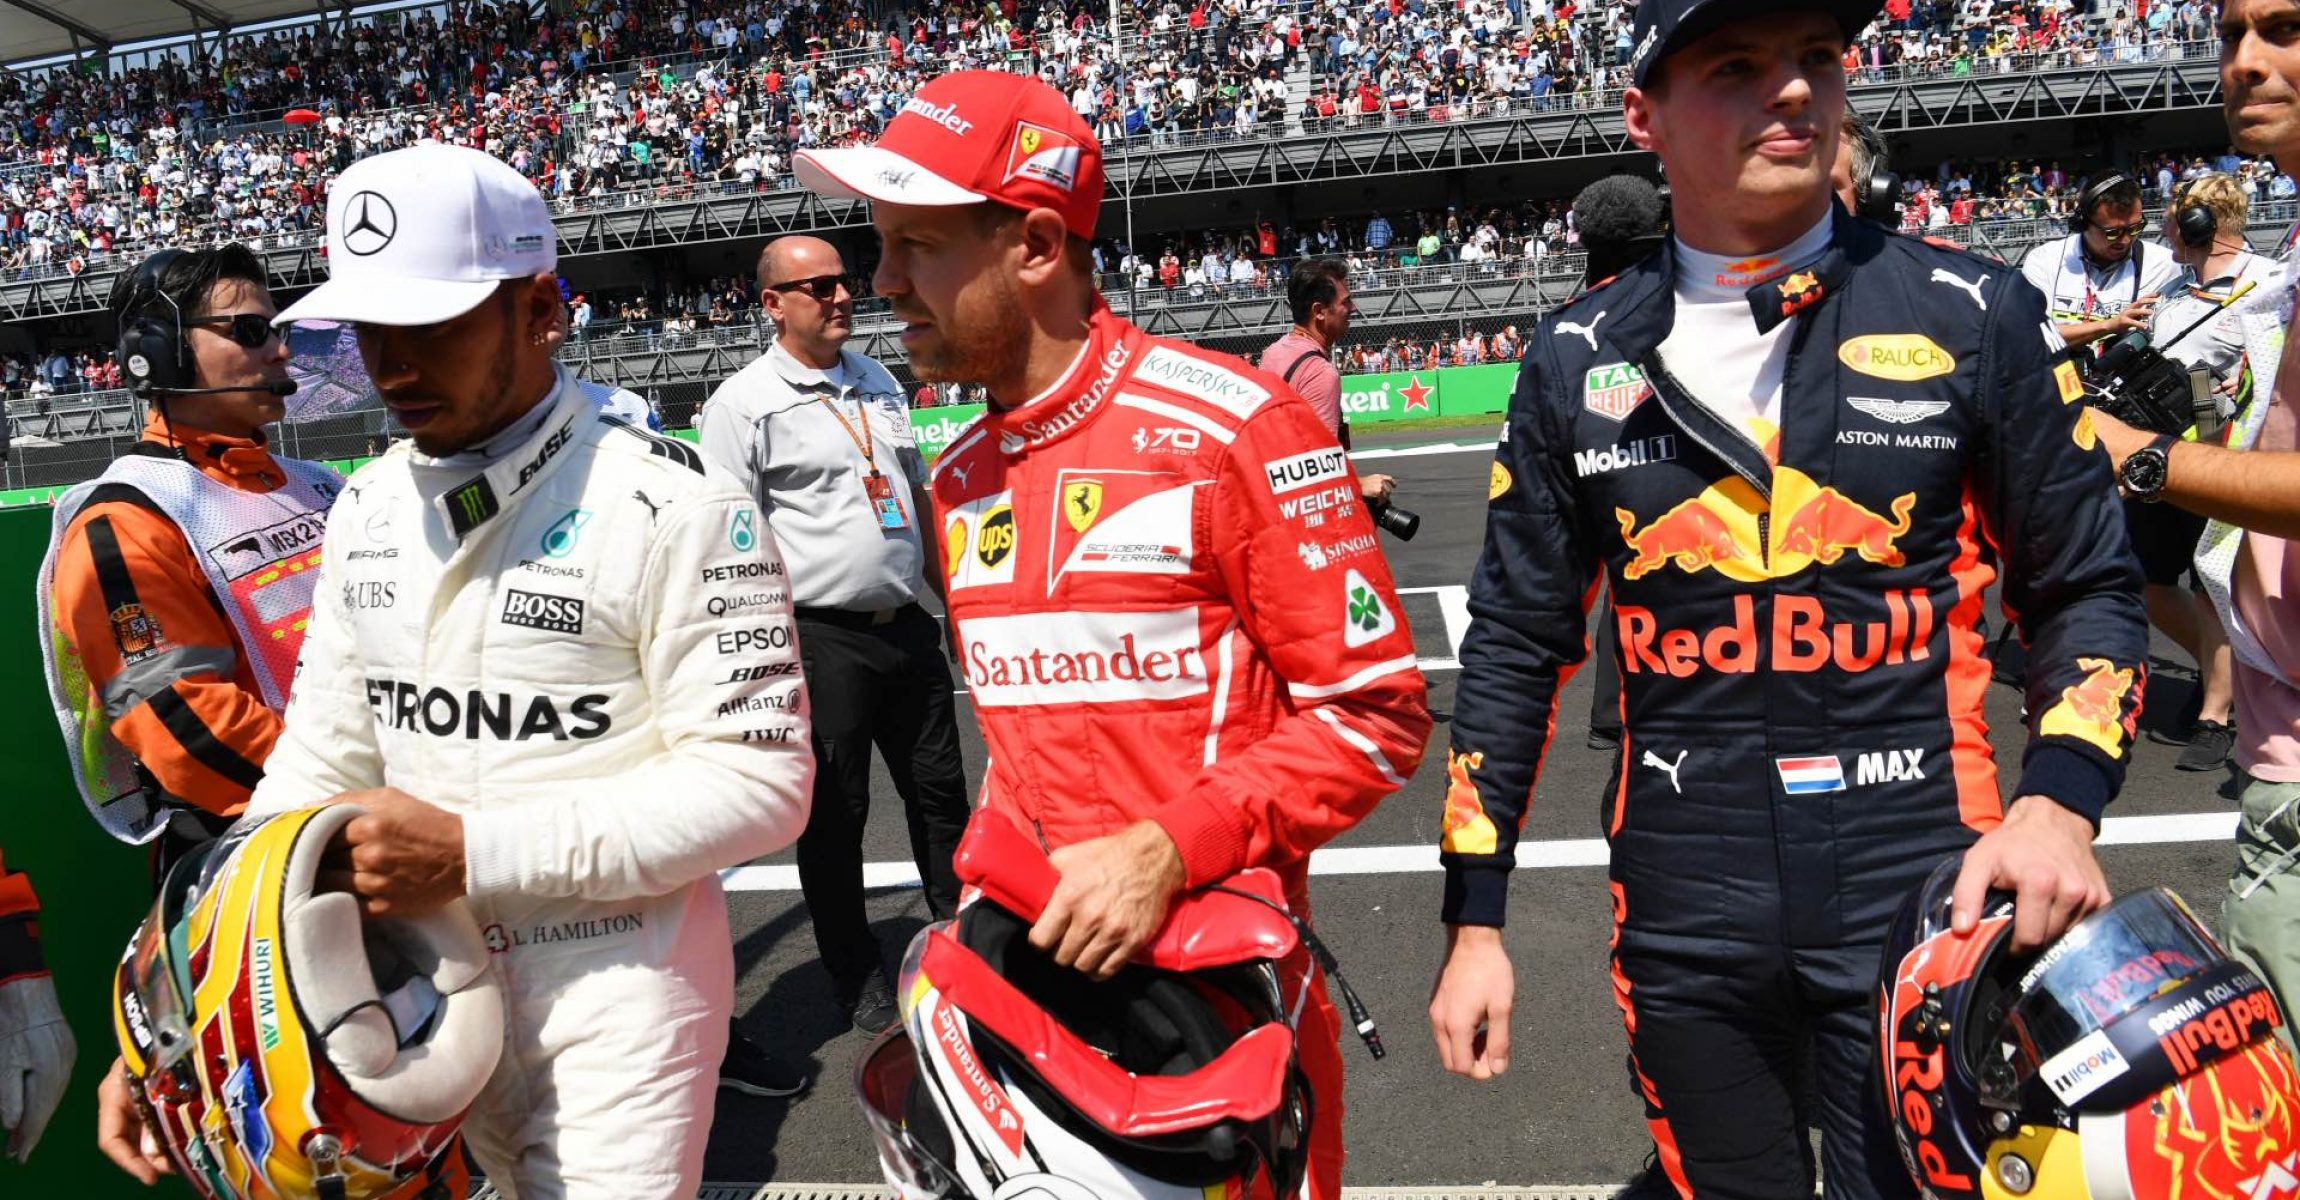 Lewis Hamilton (GBR) Mercedes AMG F1, pole sitter Sebastian Vettel (GER) Ferrari and Max Verstappen (NED) Red Bull Racing in parc ferme at Formula One World Championship, Rd18, Mexican Grand Prix, Qualifying, Circuit Hermanos Rodriguez, Mexico City, Mexico, Saturday 28 October 2017. Mexican GP 2017